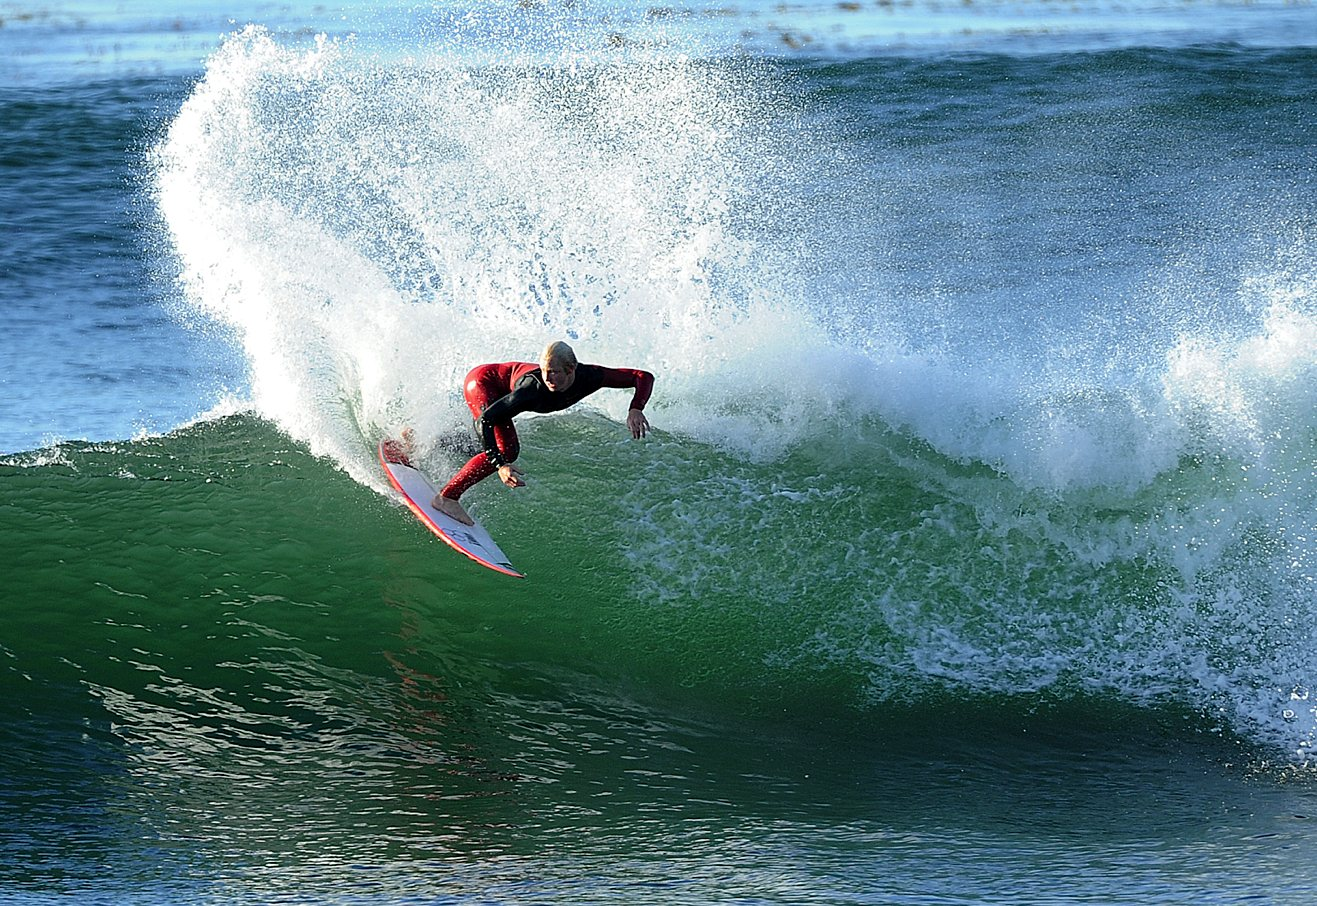 The 2008 Champ, Nat Young, will be a tough draw for any inexperienced Lane surfers should he make it through the trials. Photo: Kookson